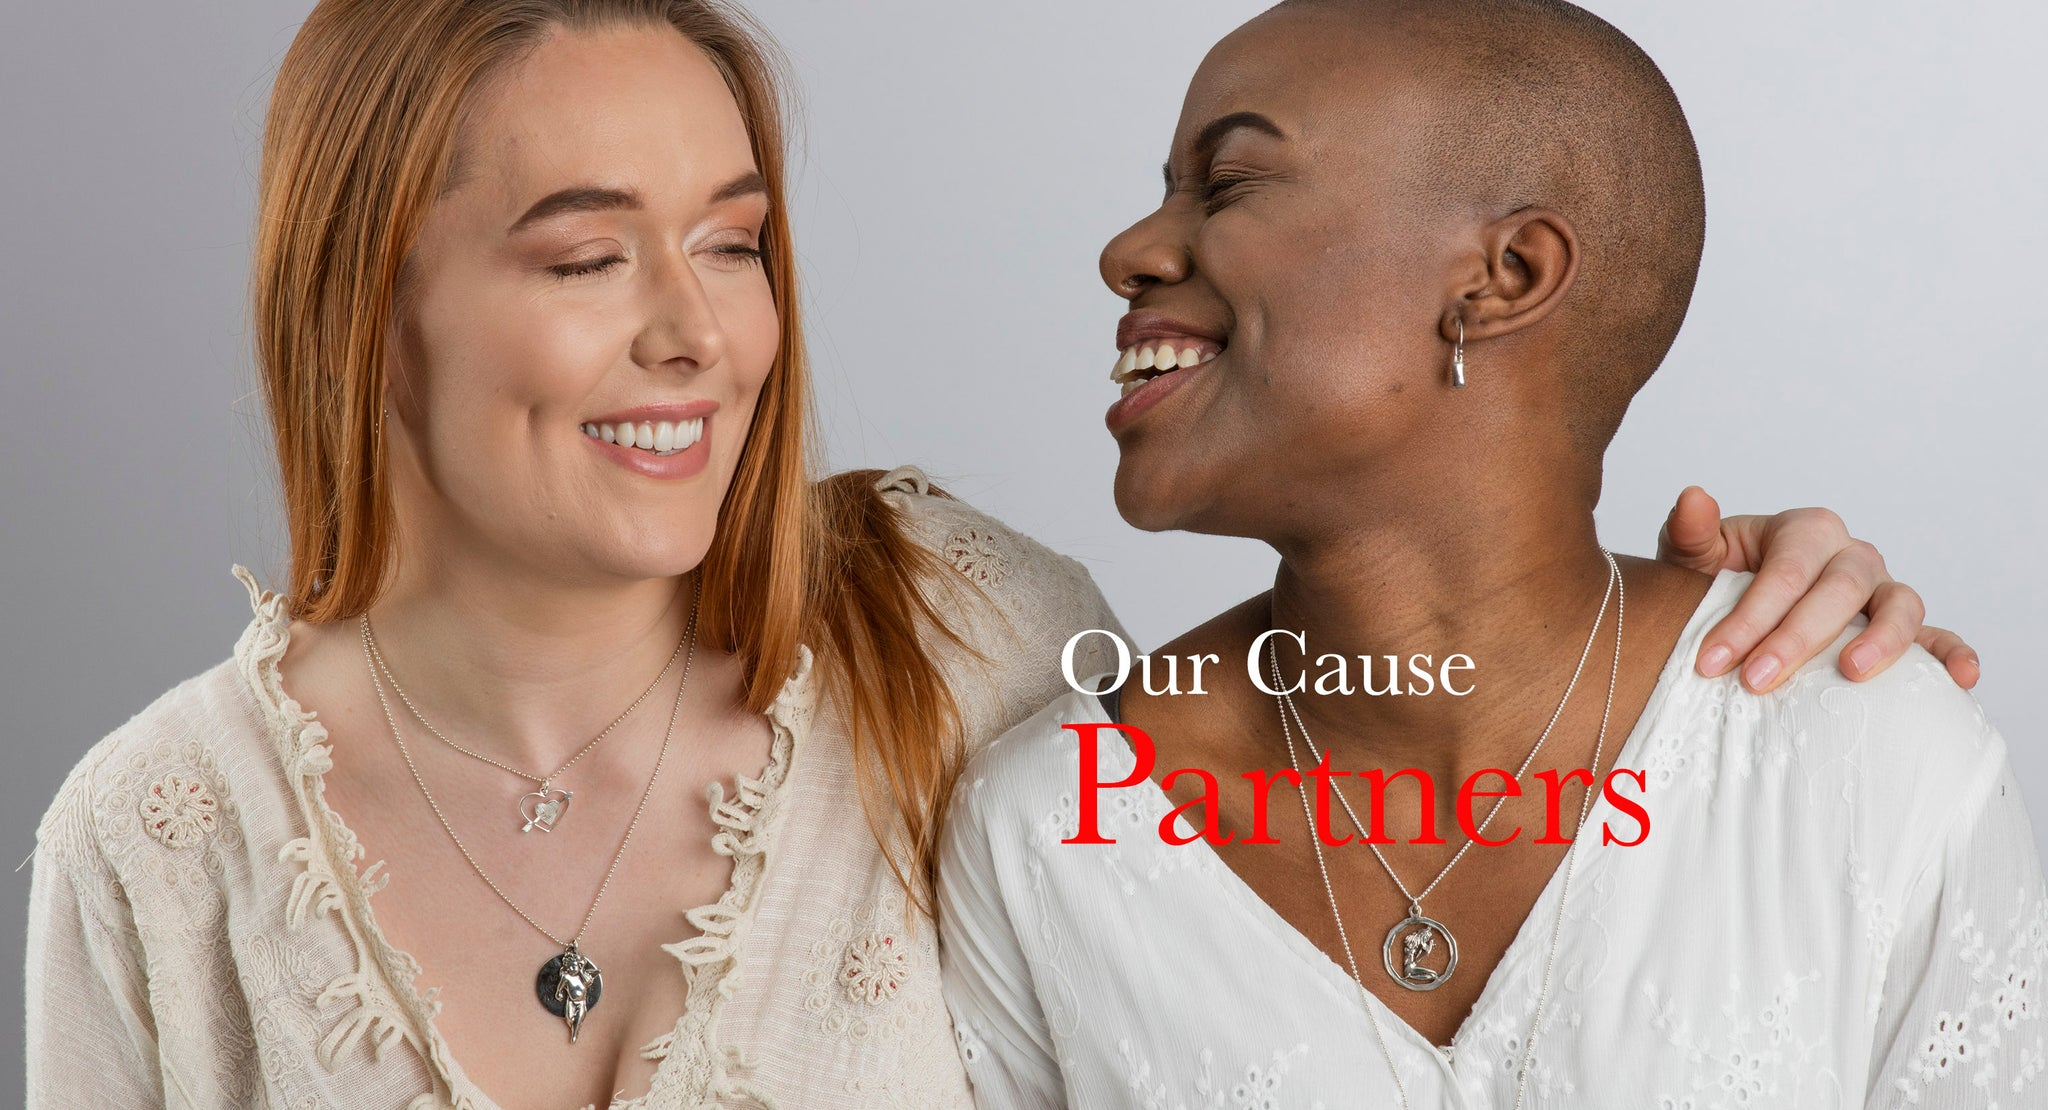 Our Cause Partners